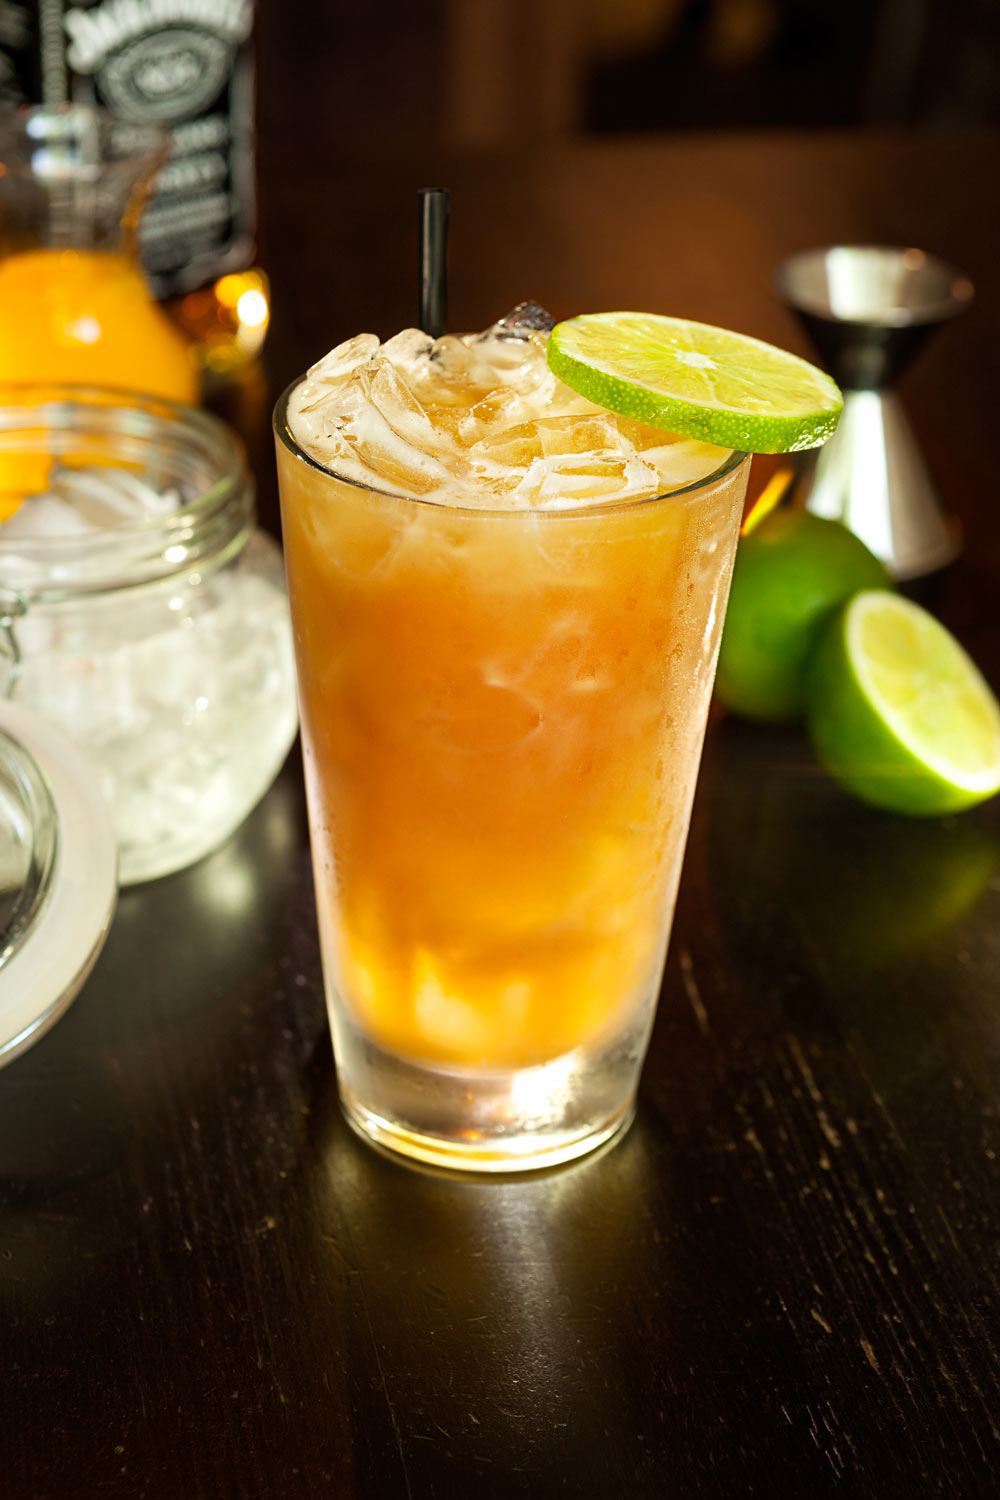 Food_Photography_Craft_cocktail_jack_daniels_ginger_beer_lemon_lime.jpg